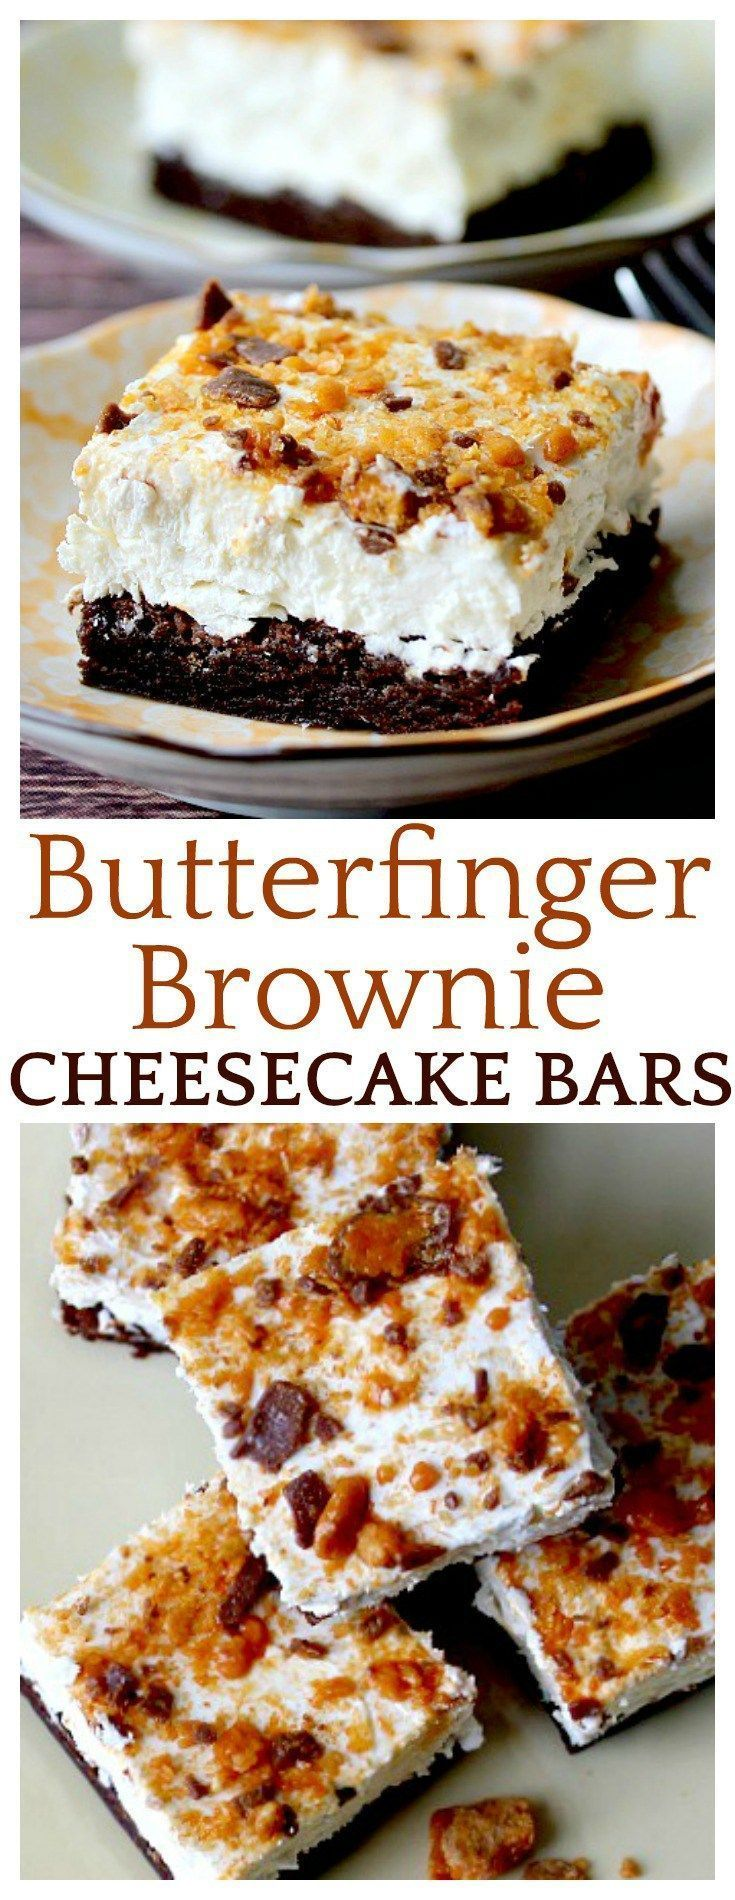 This easy-to-make brownie bar recipe is composed of a Butterfinger brownie crust, then topped with a rich, no bake cheesecake with even more Butterfinger bits sprinkled on top!